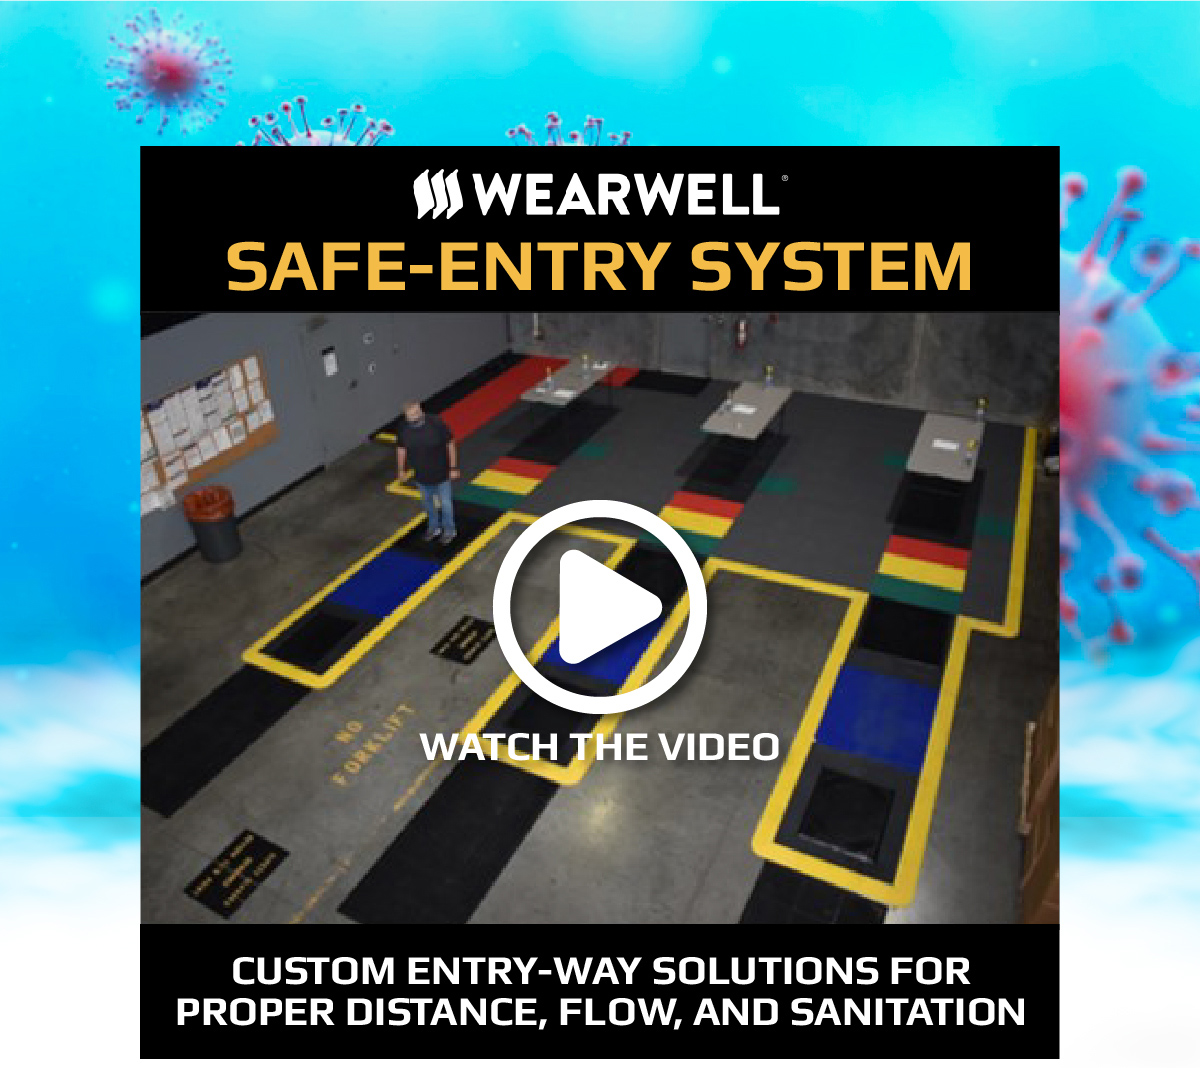 Safe-Entry System Video